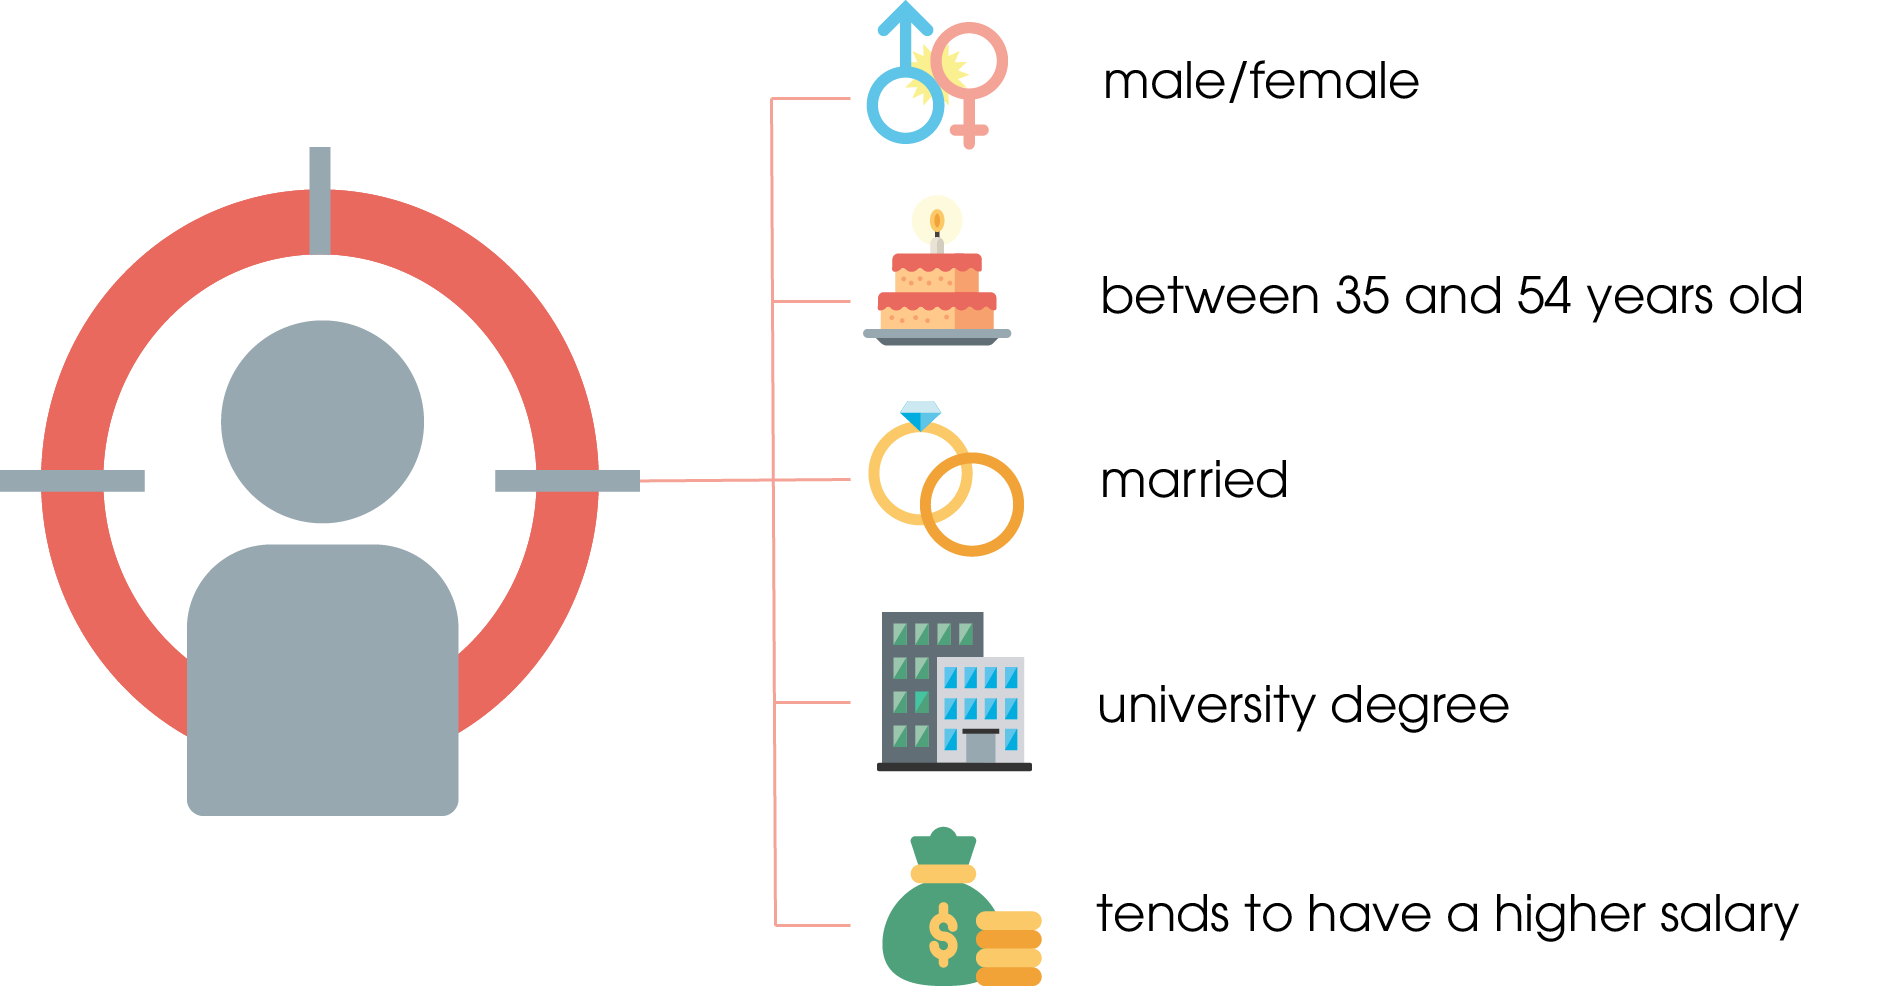 Schematic representation of the average Microsoft search engine user. This person meets the following criteria: - male or female - between 35 and 54 years old - married - with a university degree - tends to have a higher salary